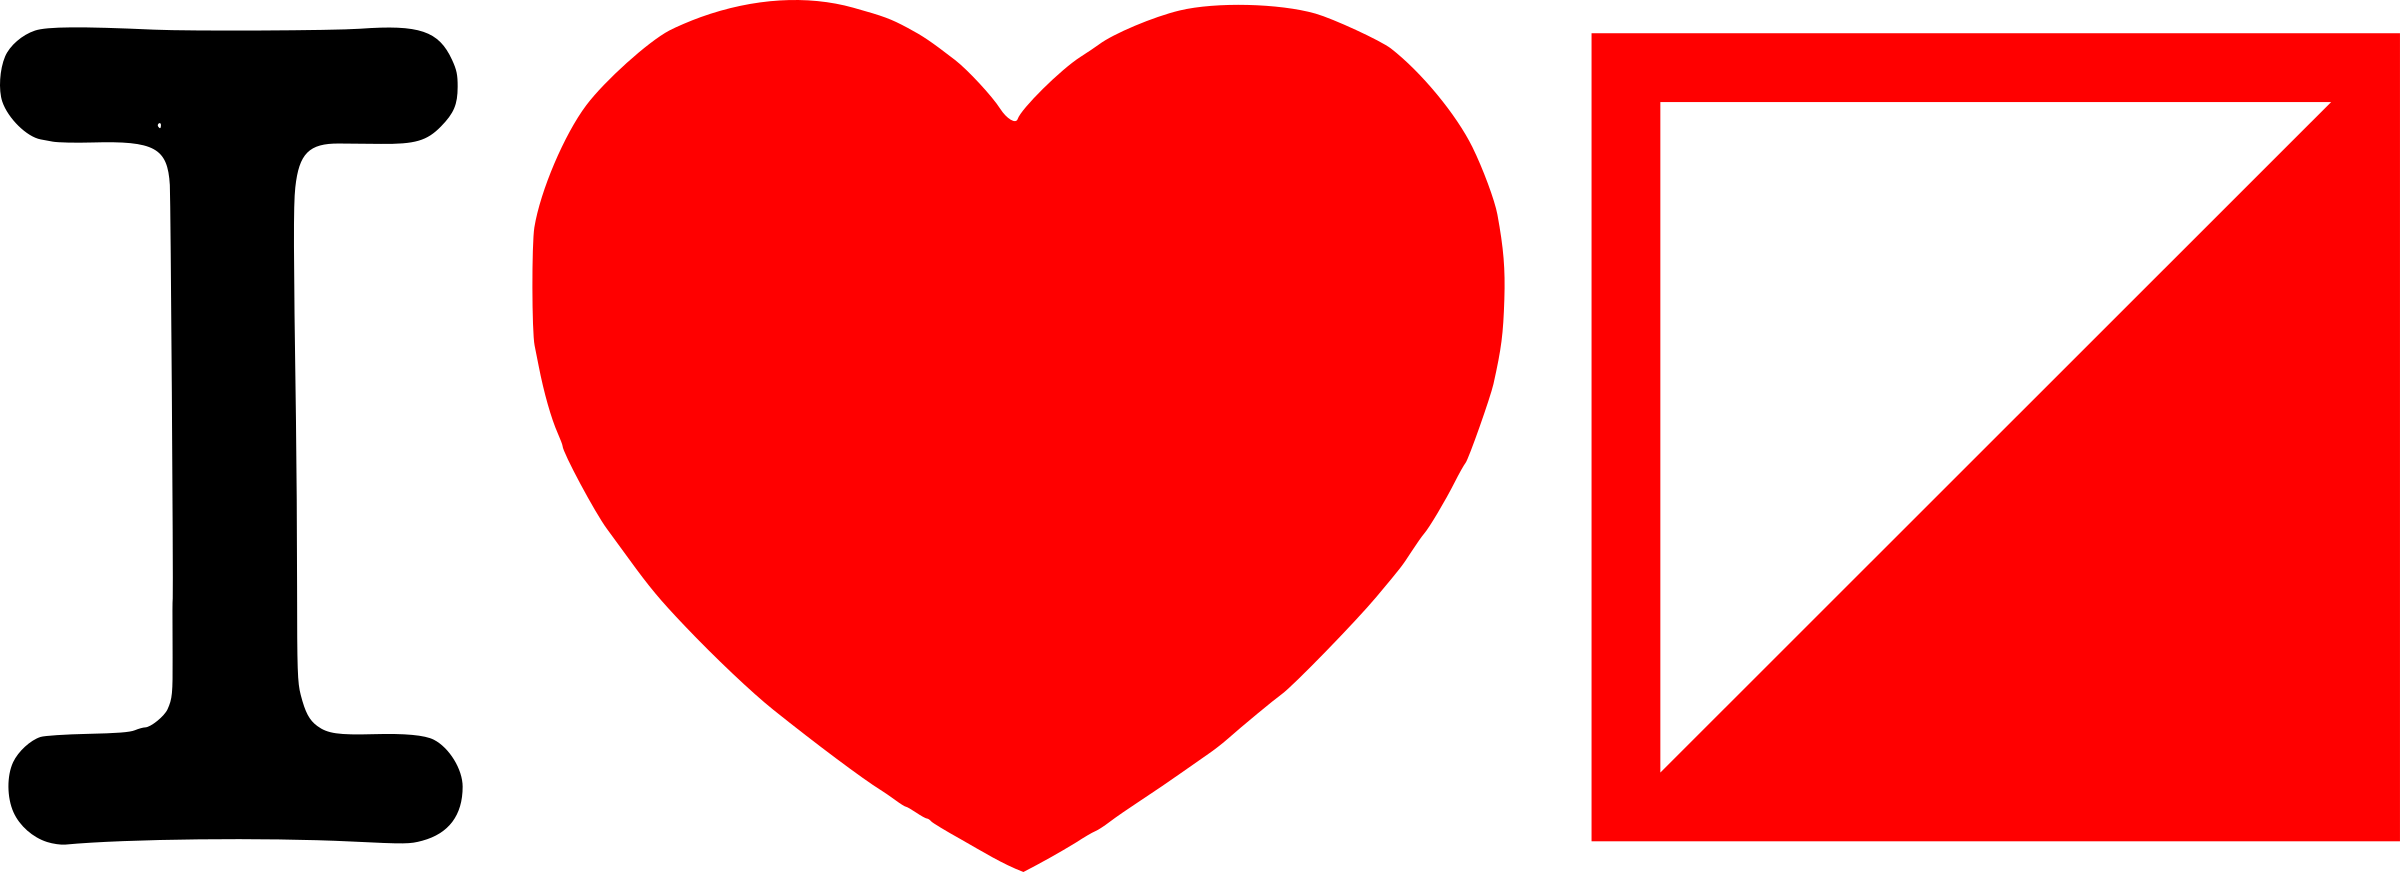 Image . I heart png graphic transparent